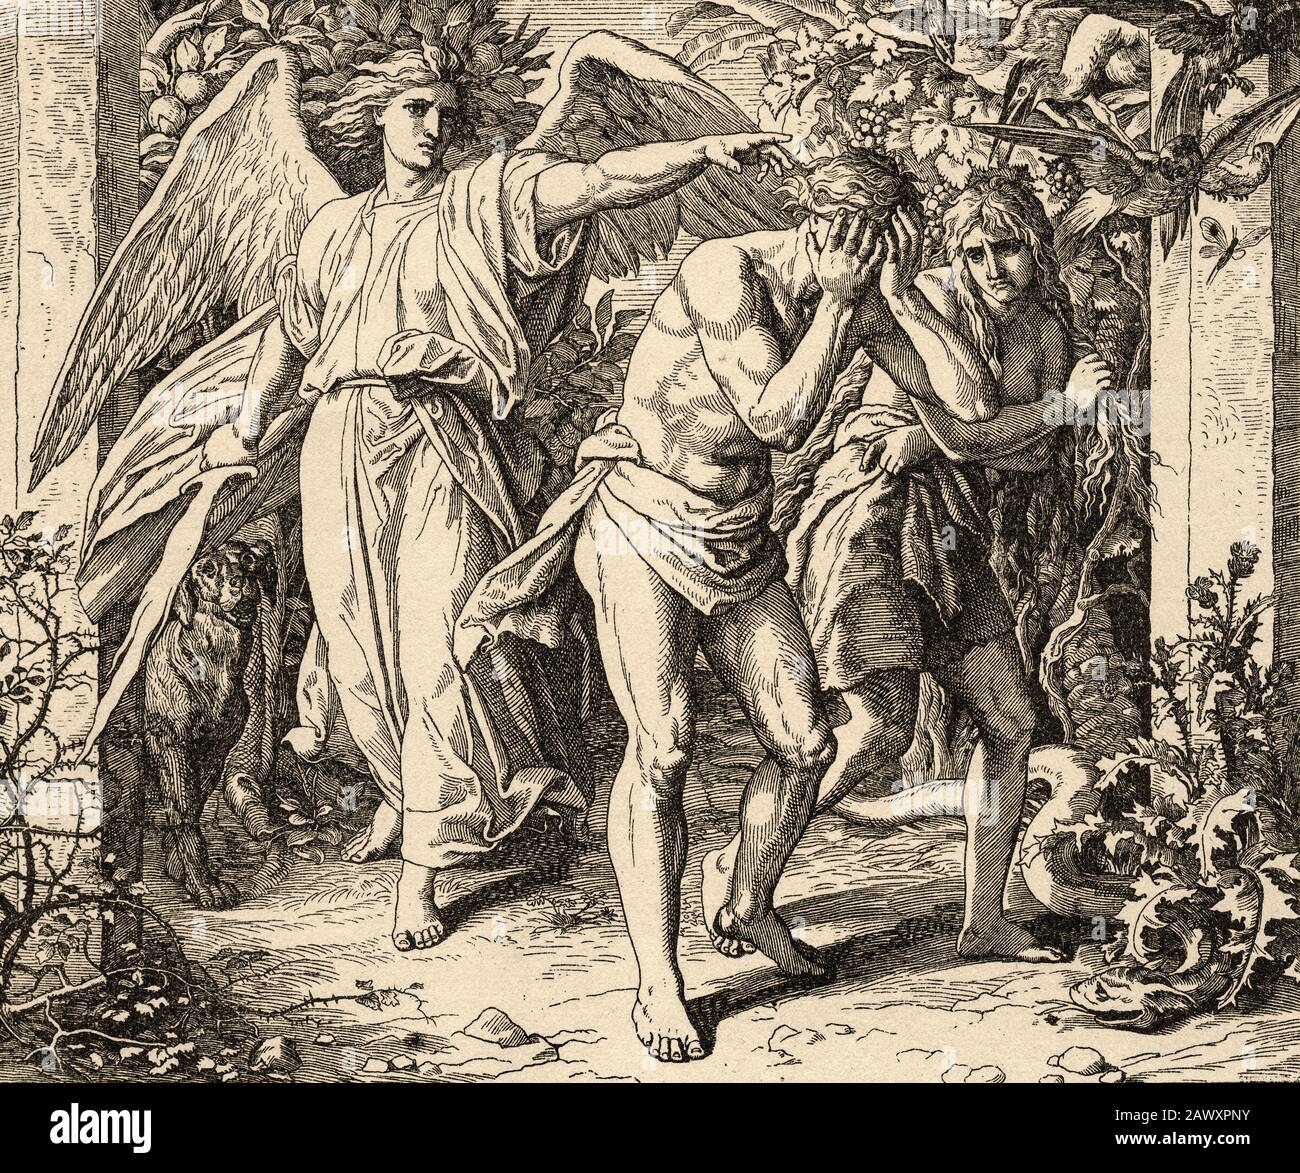 Genesis. God expels Adam and Eve from the Garden of Eden to work the land. Sacred biblical history Old Testament. Old engraving Stock Photo